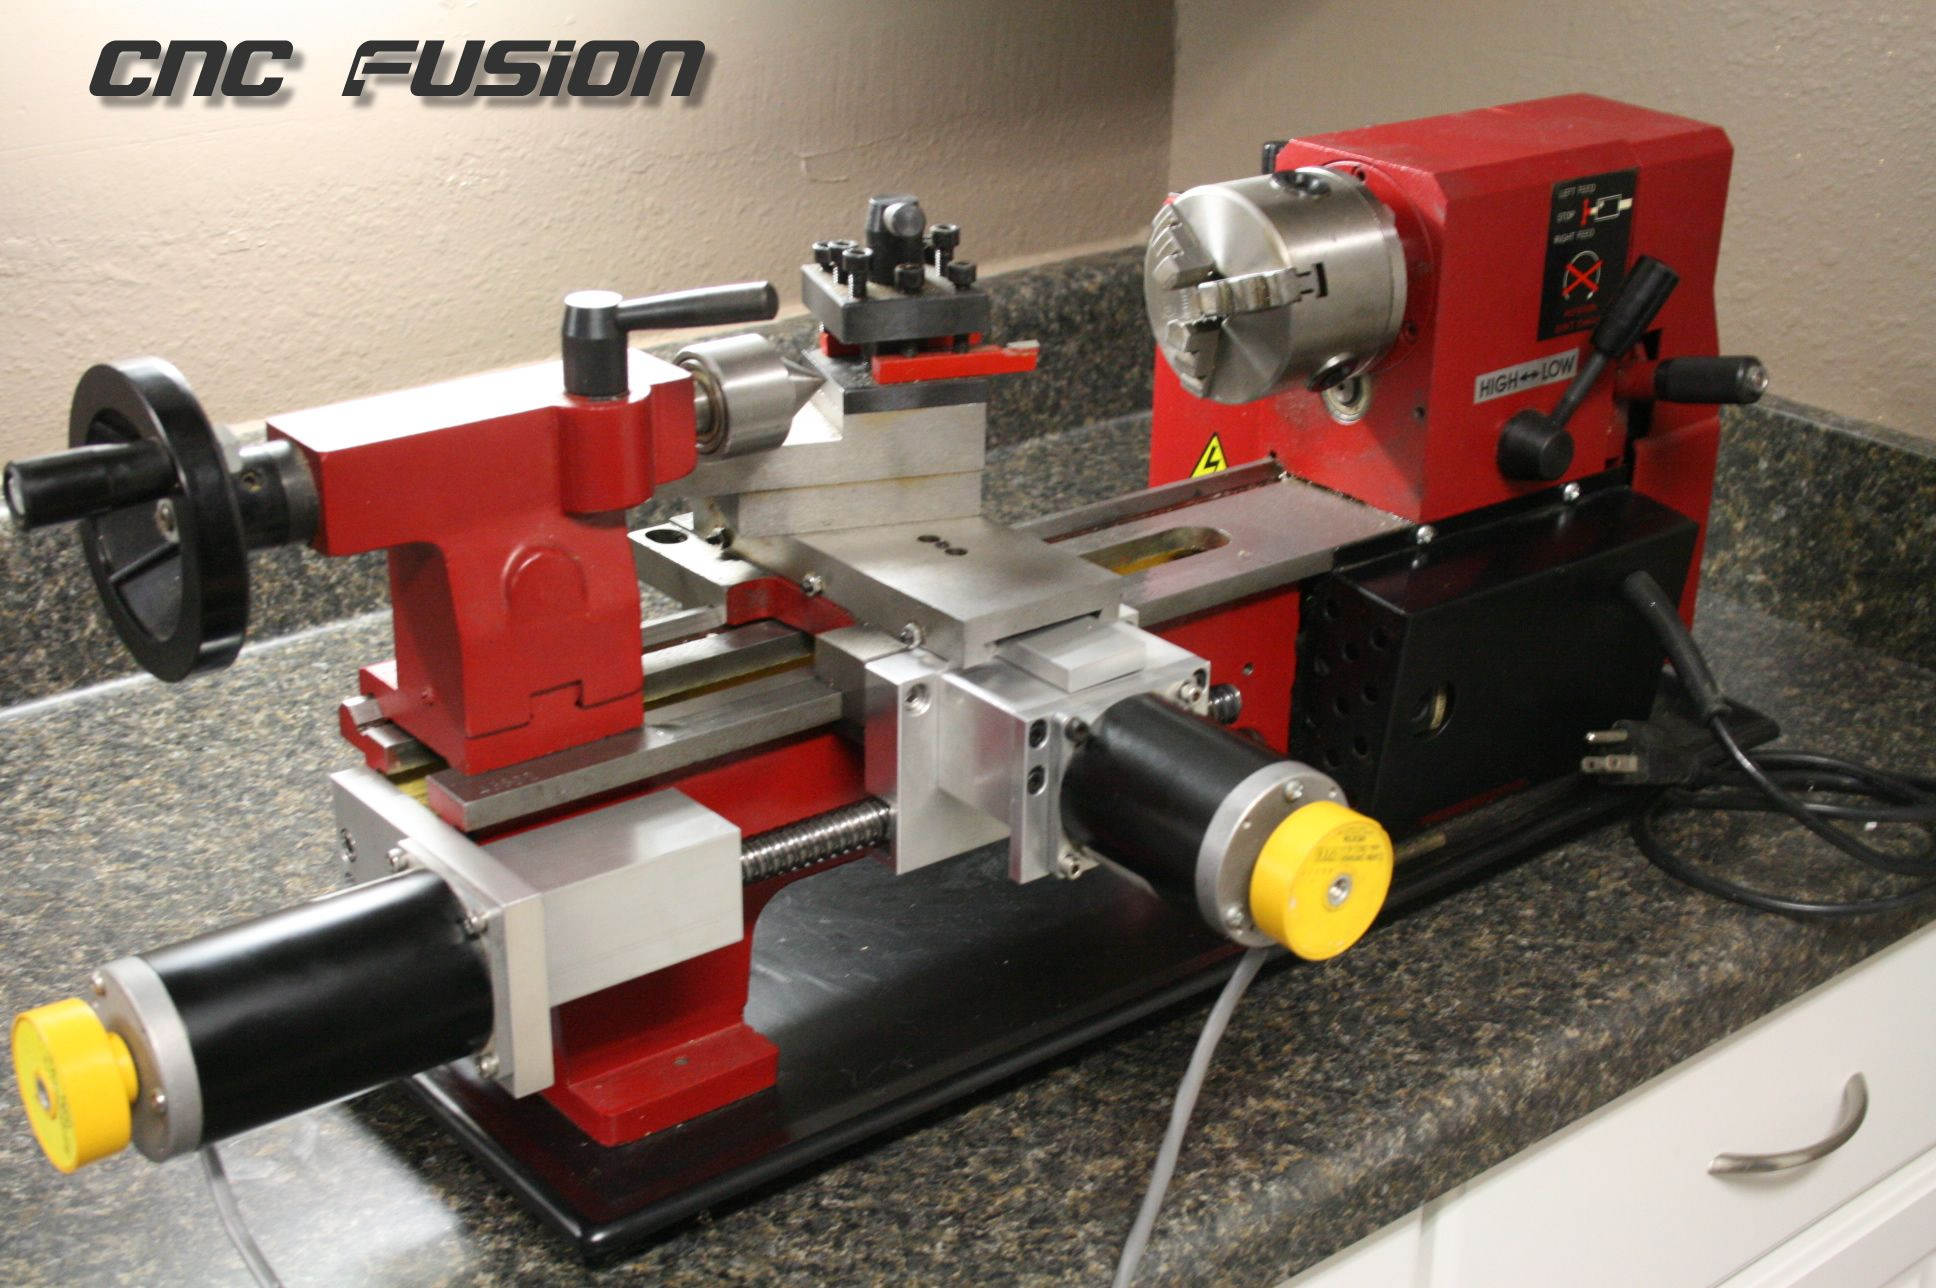 CNC FUSION CNC Conversion Kits for benchtop lathes and